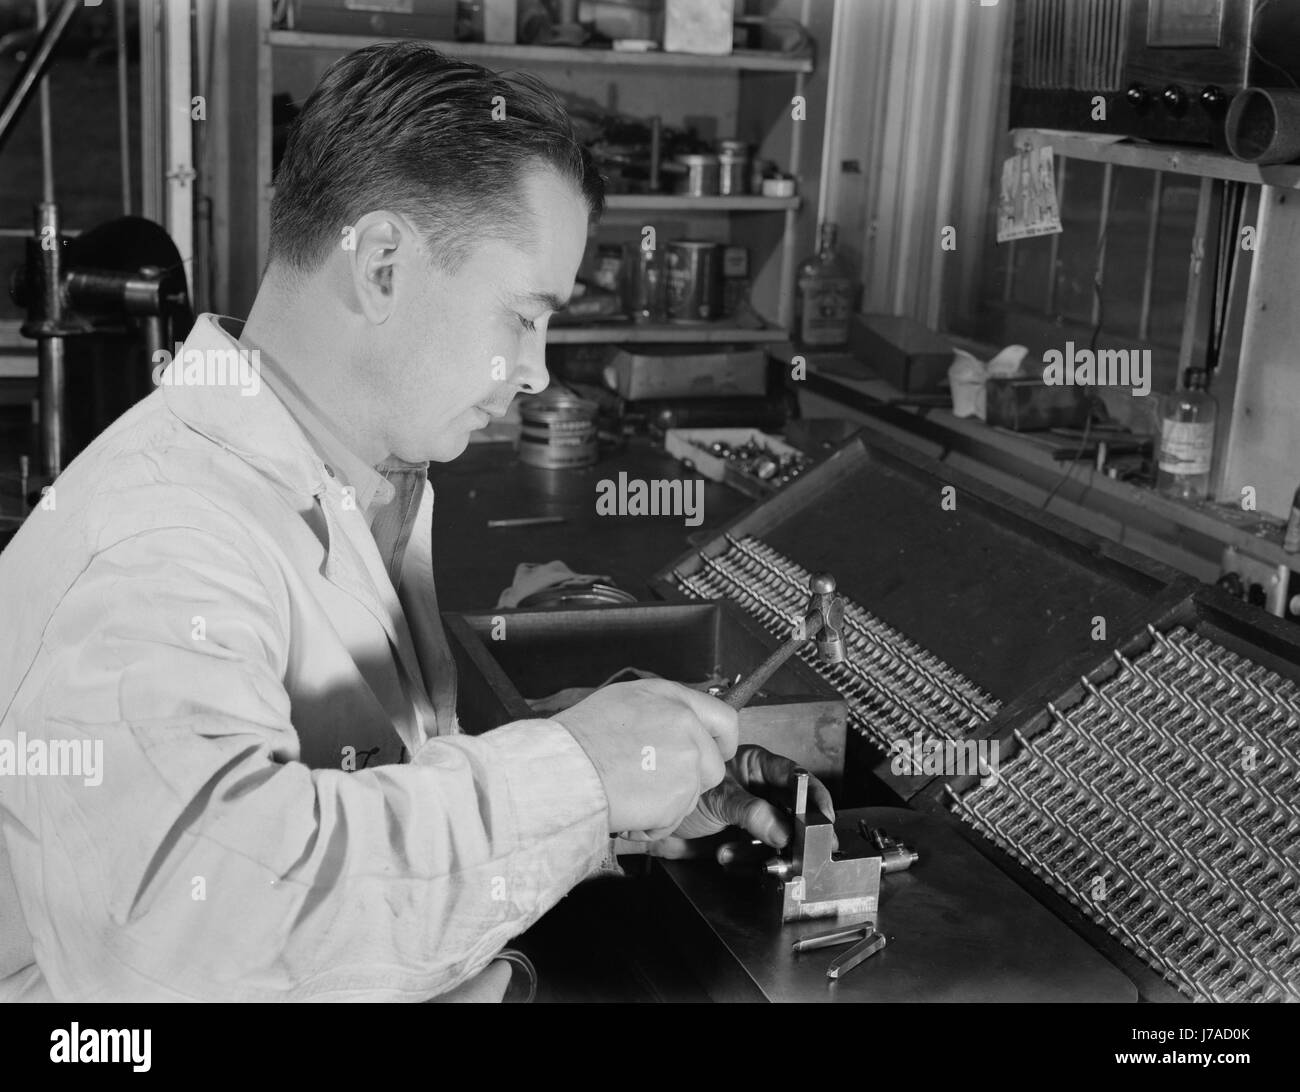 A local subcontractor numbers the barrels of the valves for blood transfusion bottles. - Stock Image